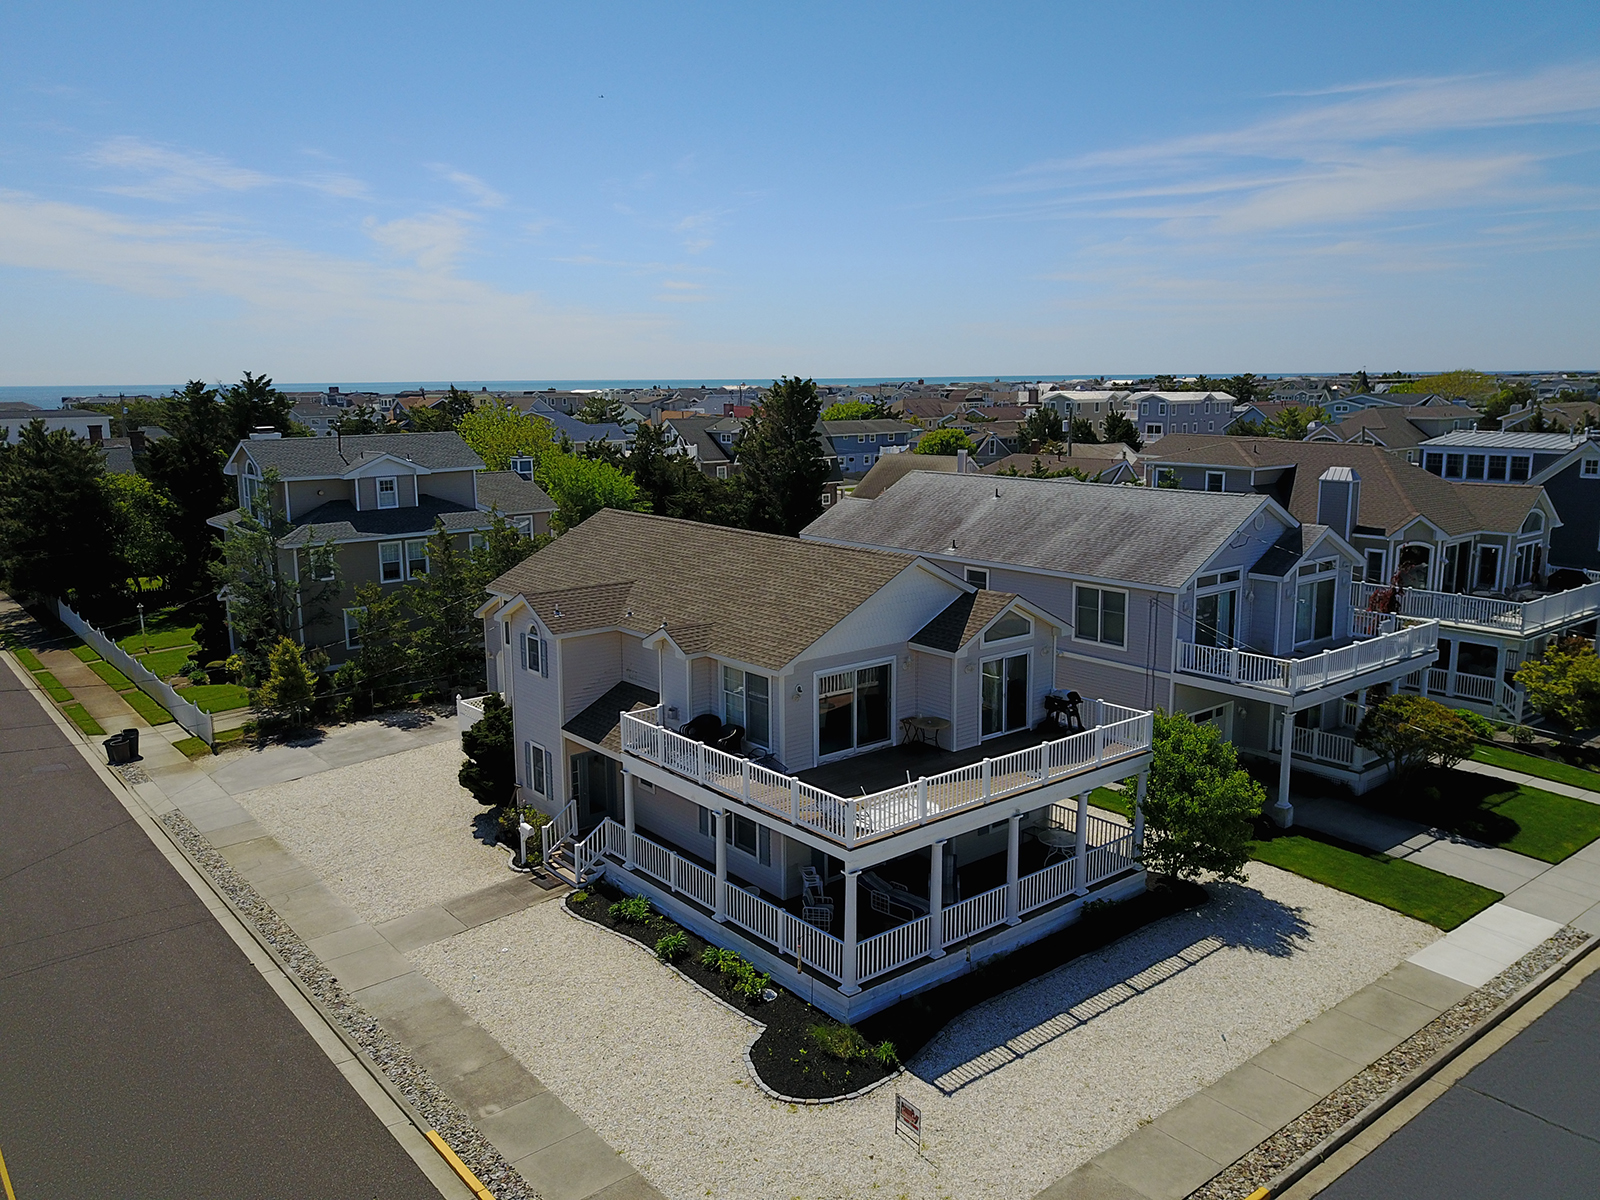 Single Family Home for Sale at Getaway Corner Beach Property 1019 First Avenue Avalon, New Jersey 08202 United States